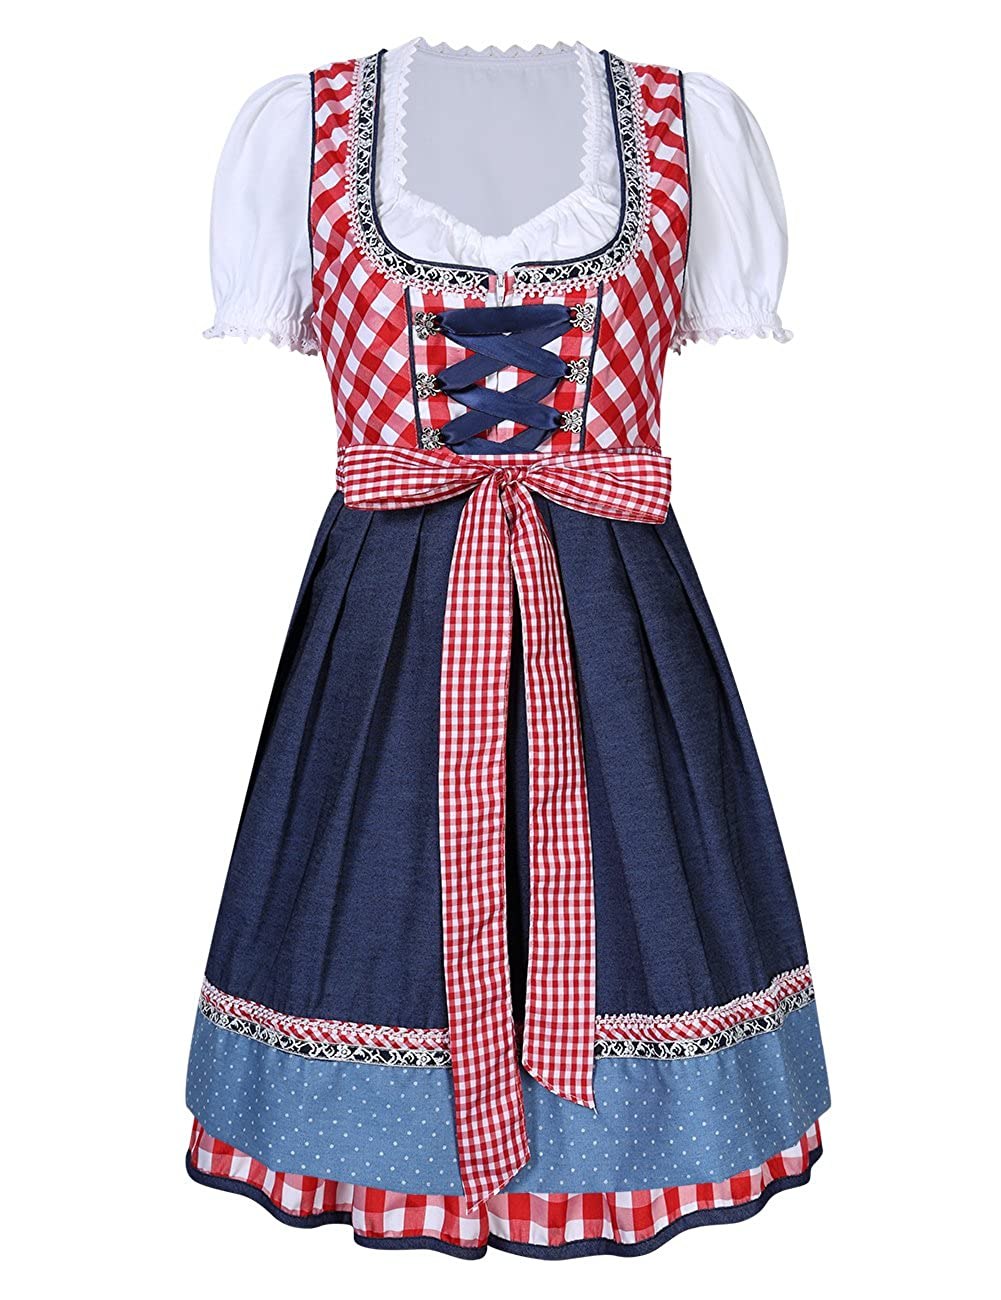 Yiwa Women's German Dirndl Dress 3 Pieces Oktoberfest Costumes